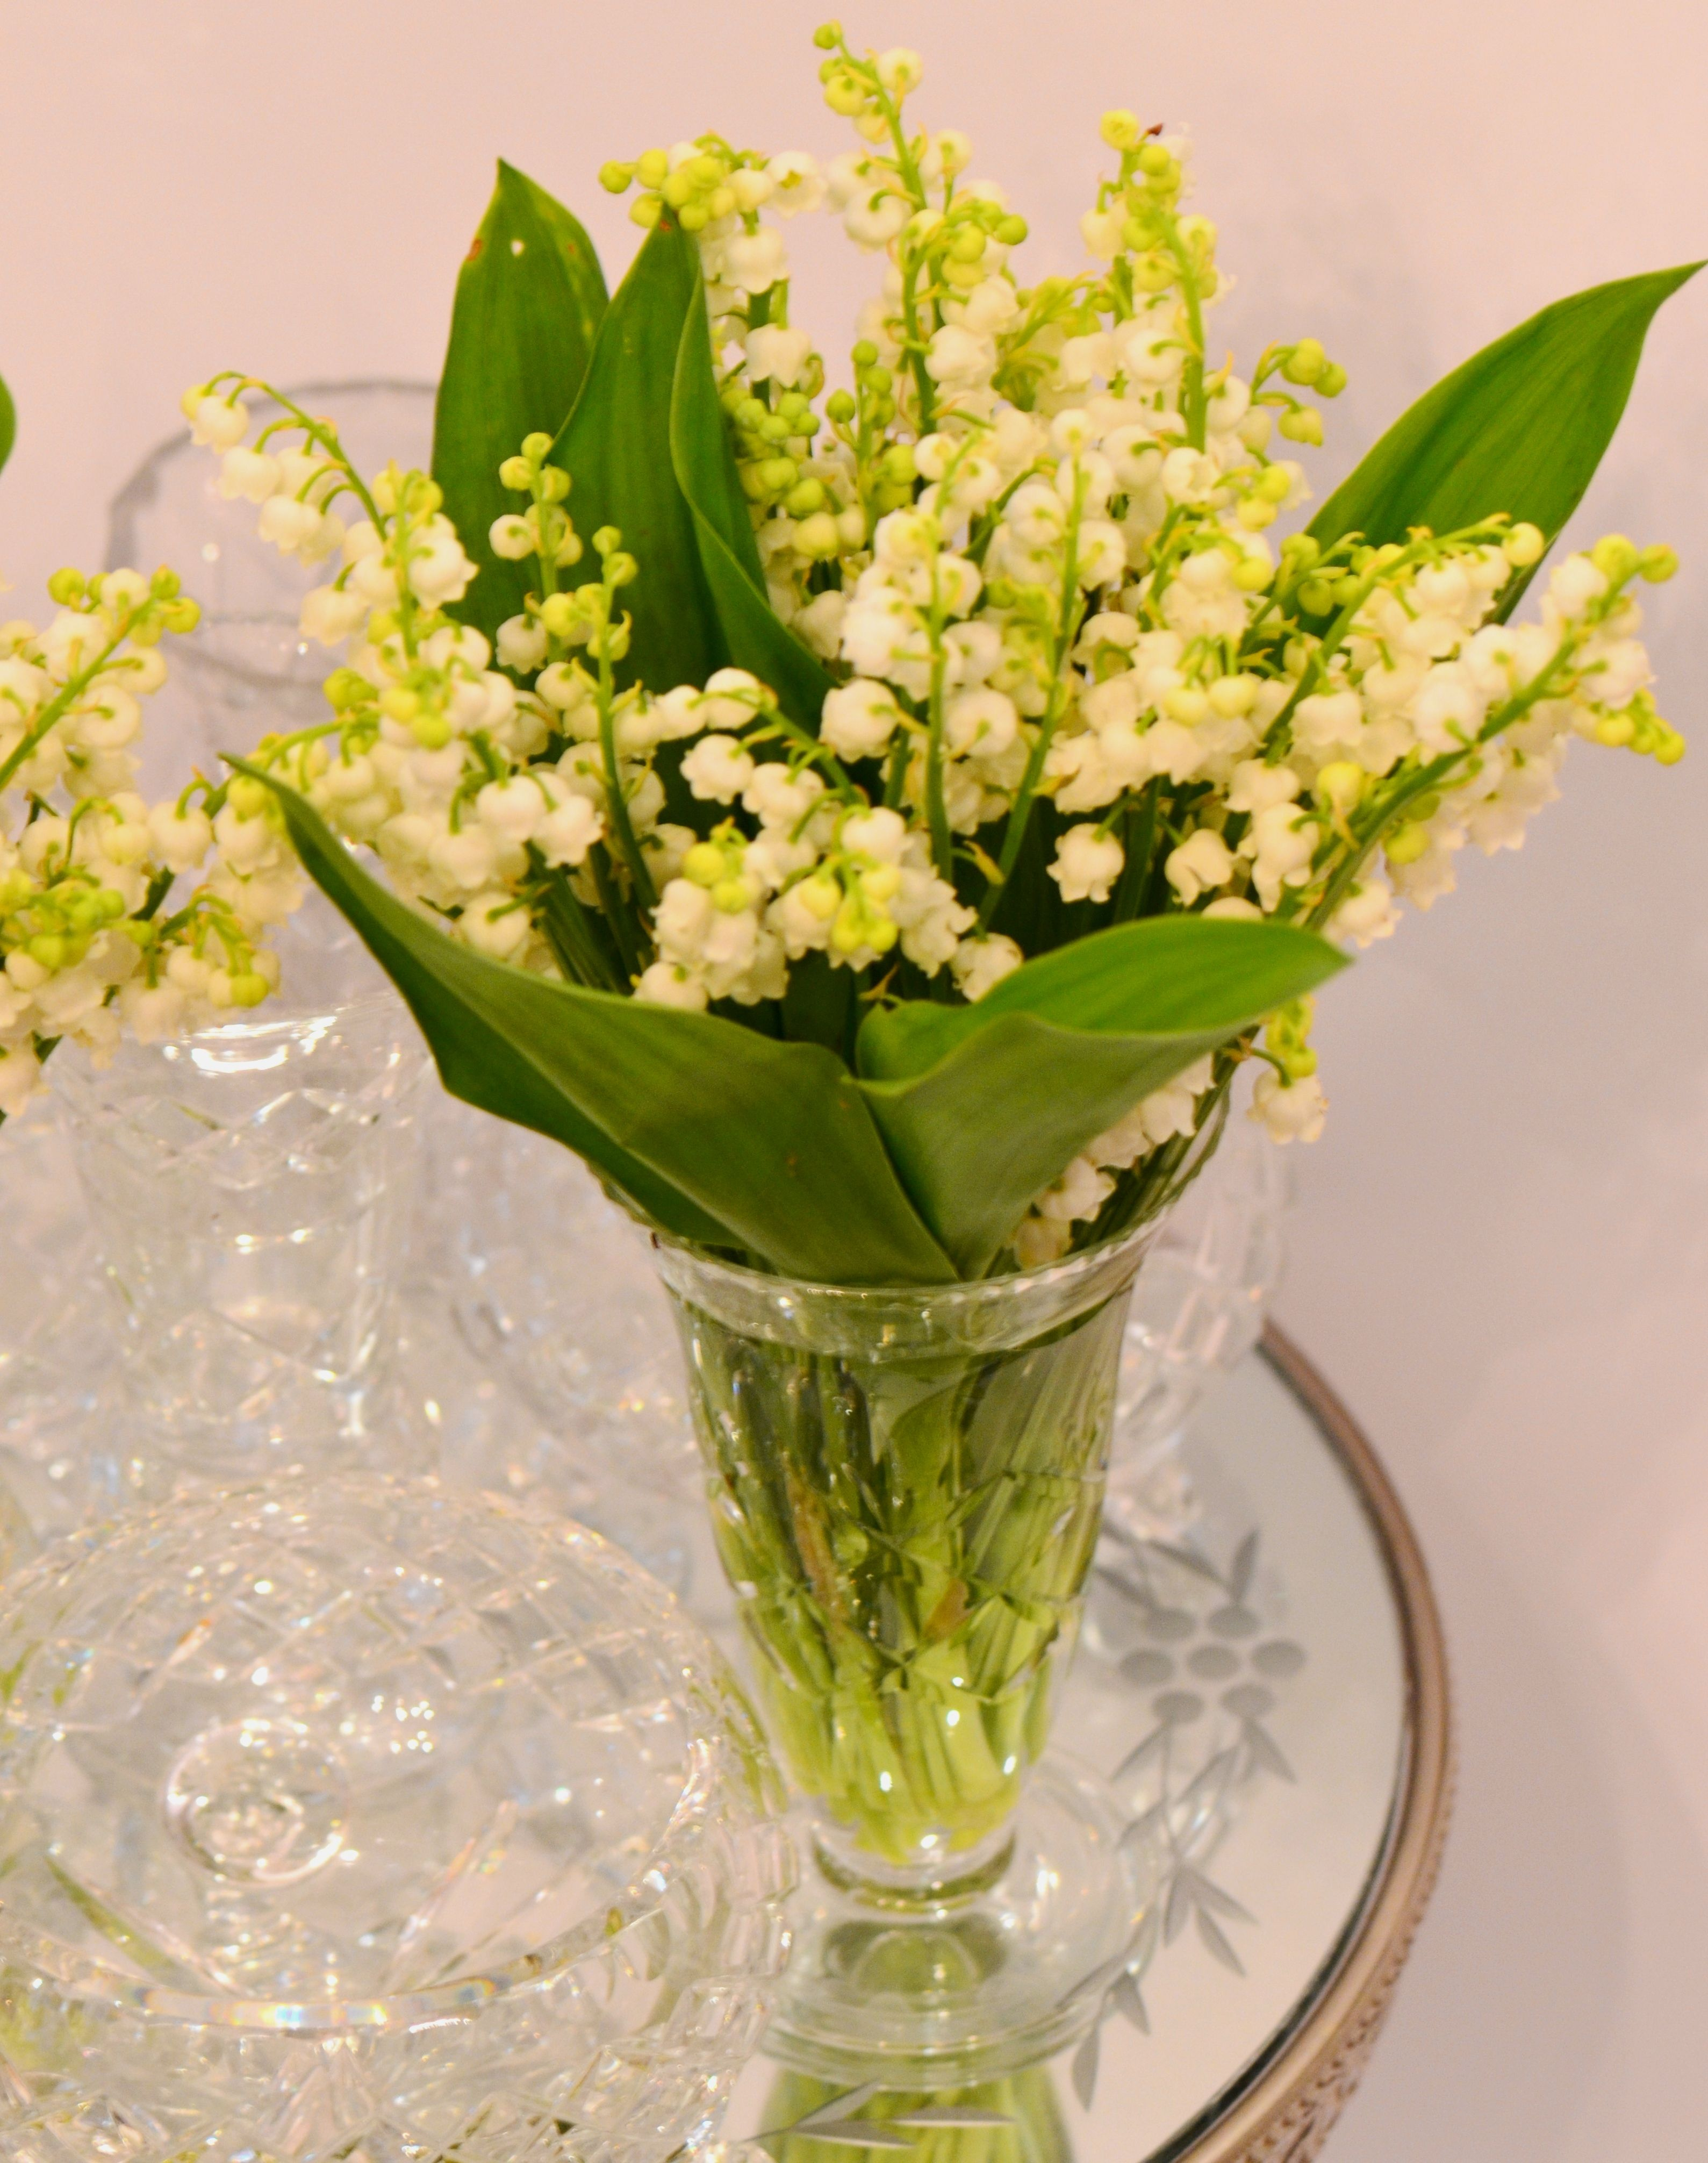 Flower of the month the arrangement of lily of the valley has been flower of the month the arrangement of lily of the valley has been created by alice izmirmasajfo